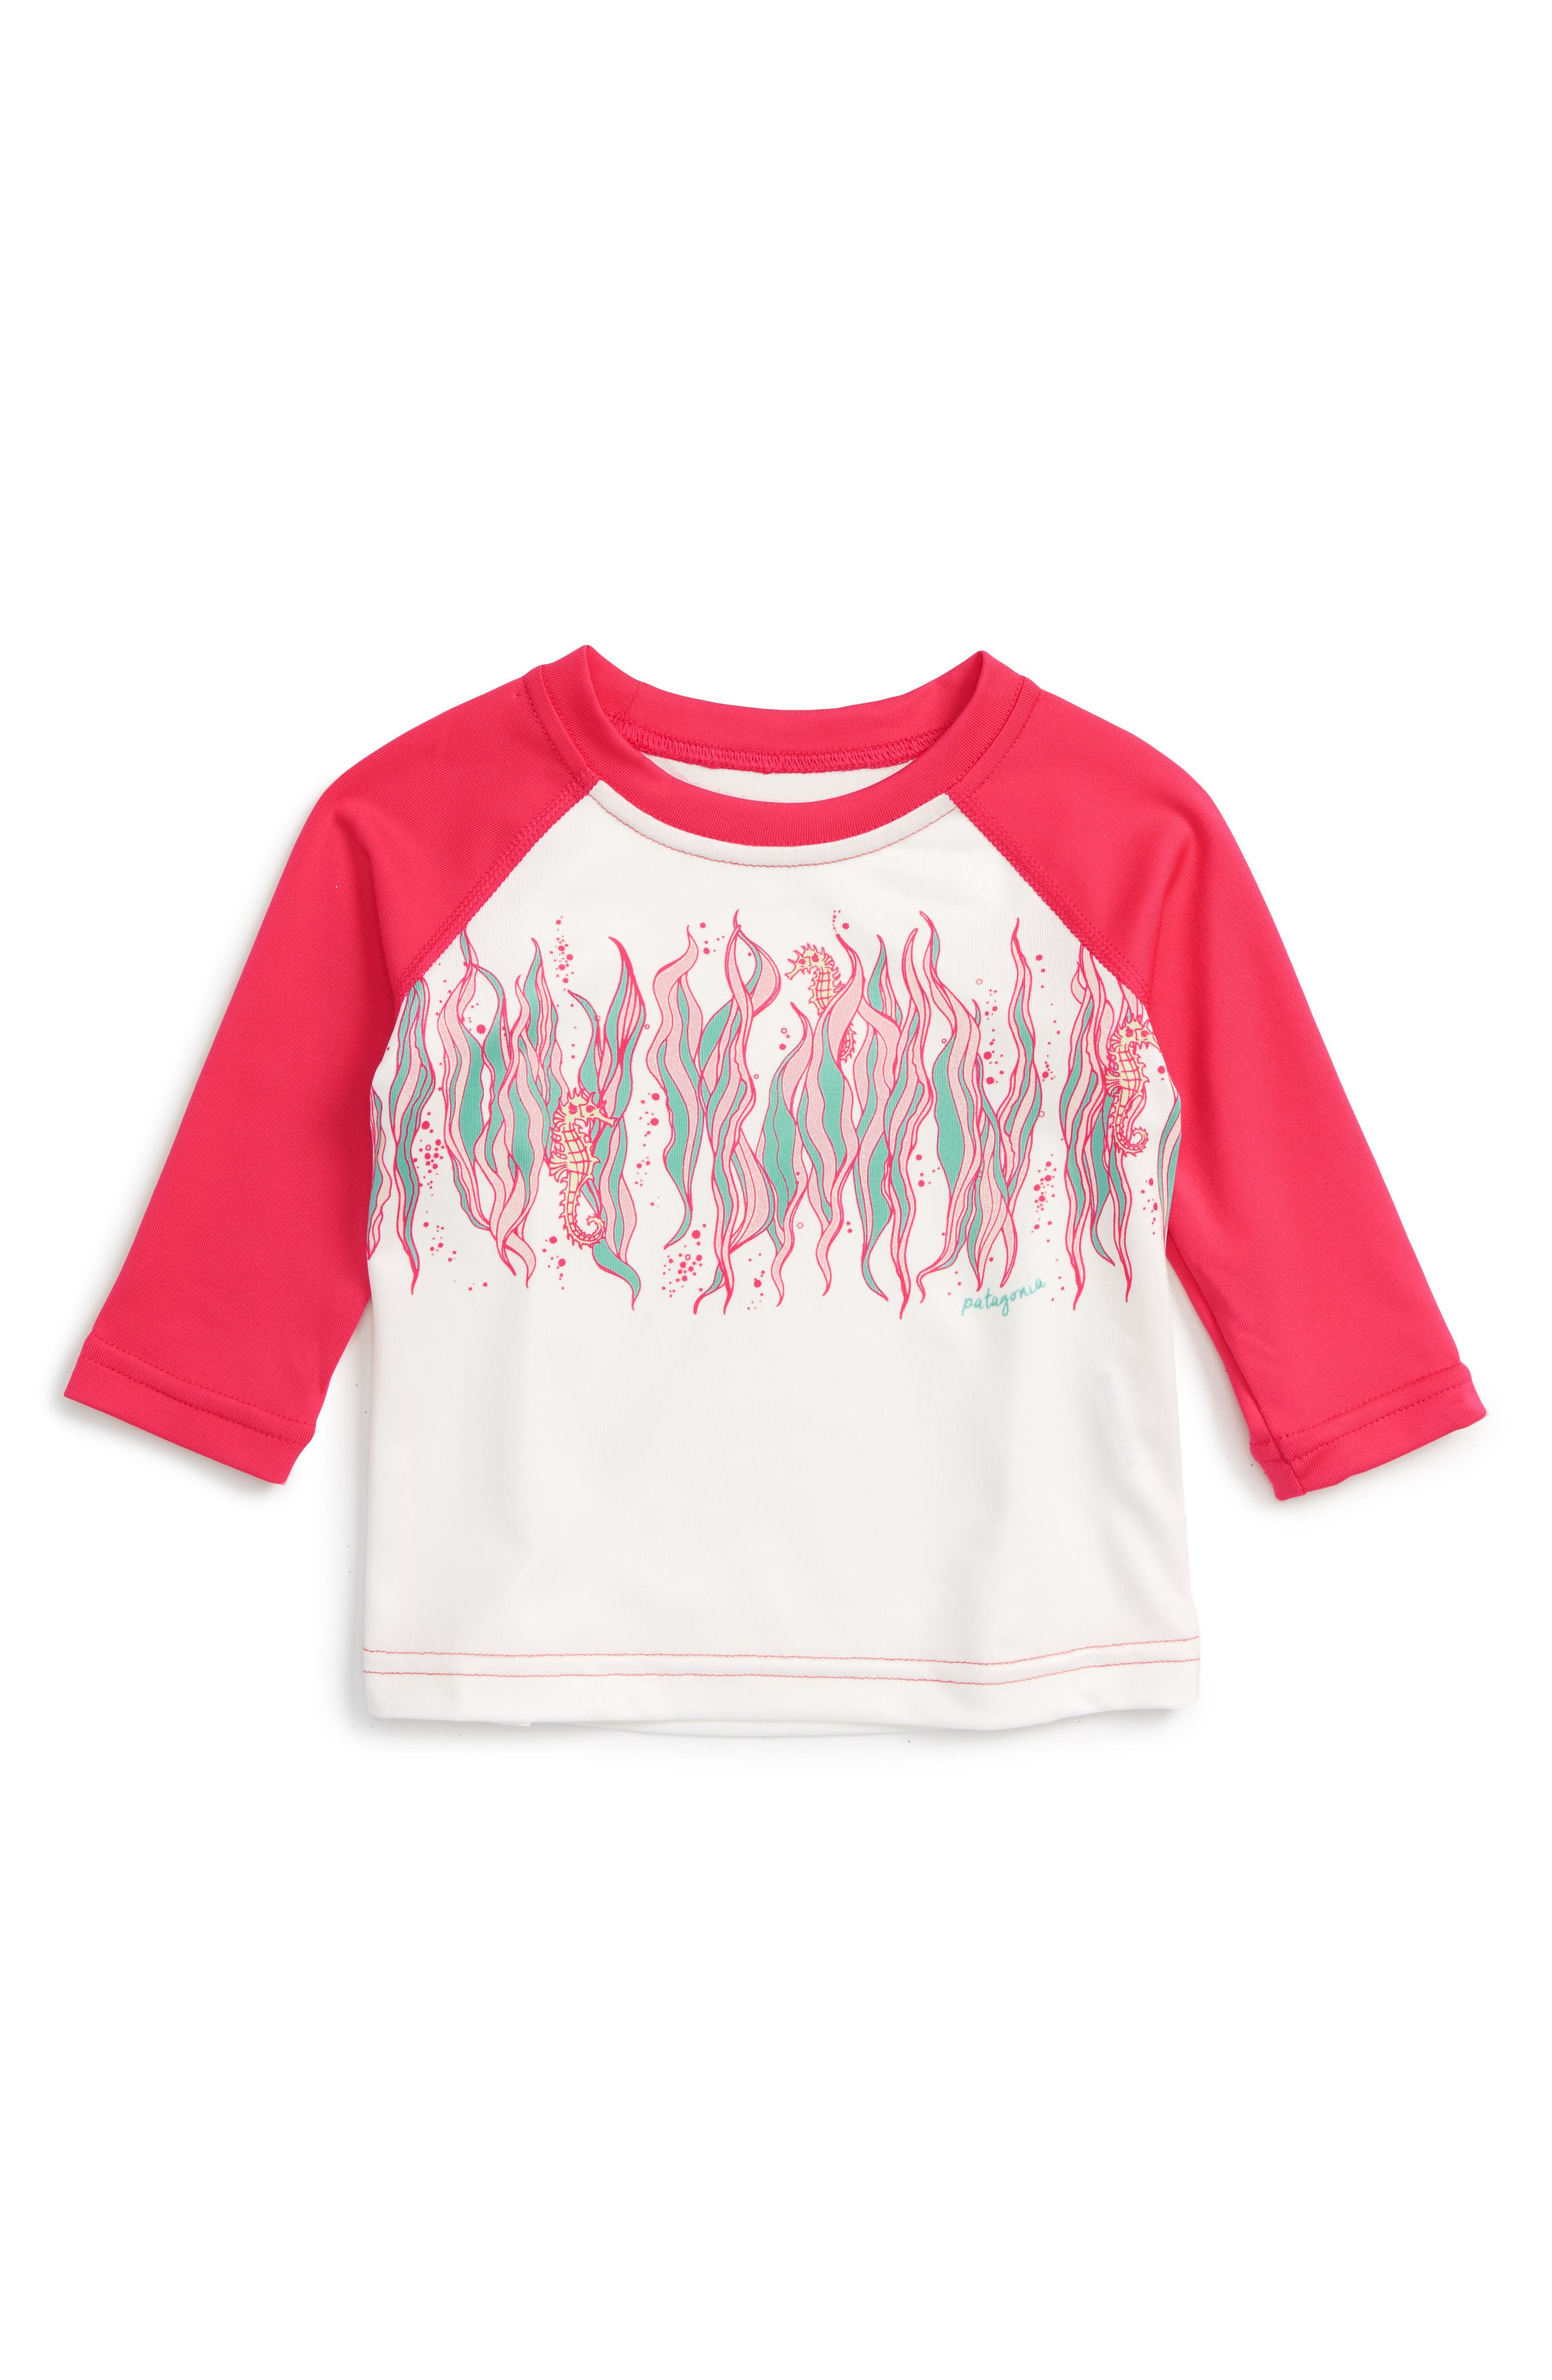 Capilene<sup>®</sup> Baseball Tee,                             Main thumbnail 2, color,